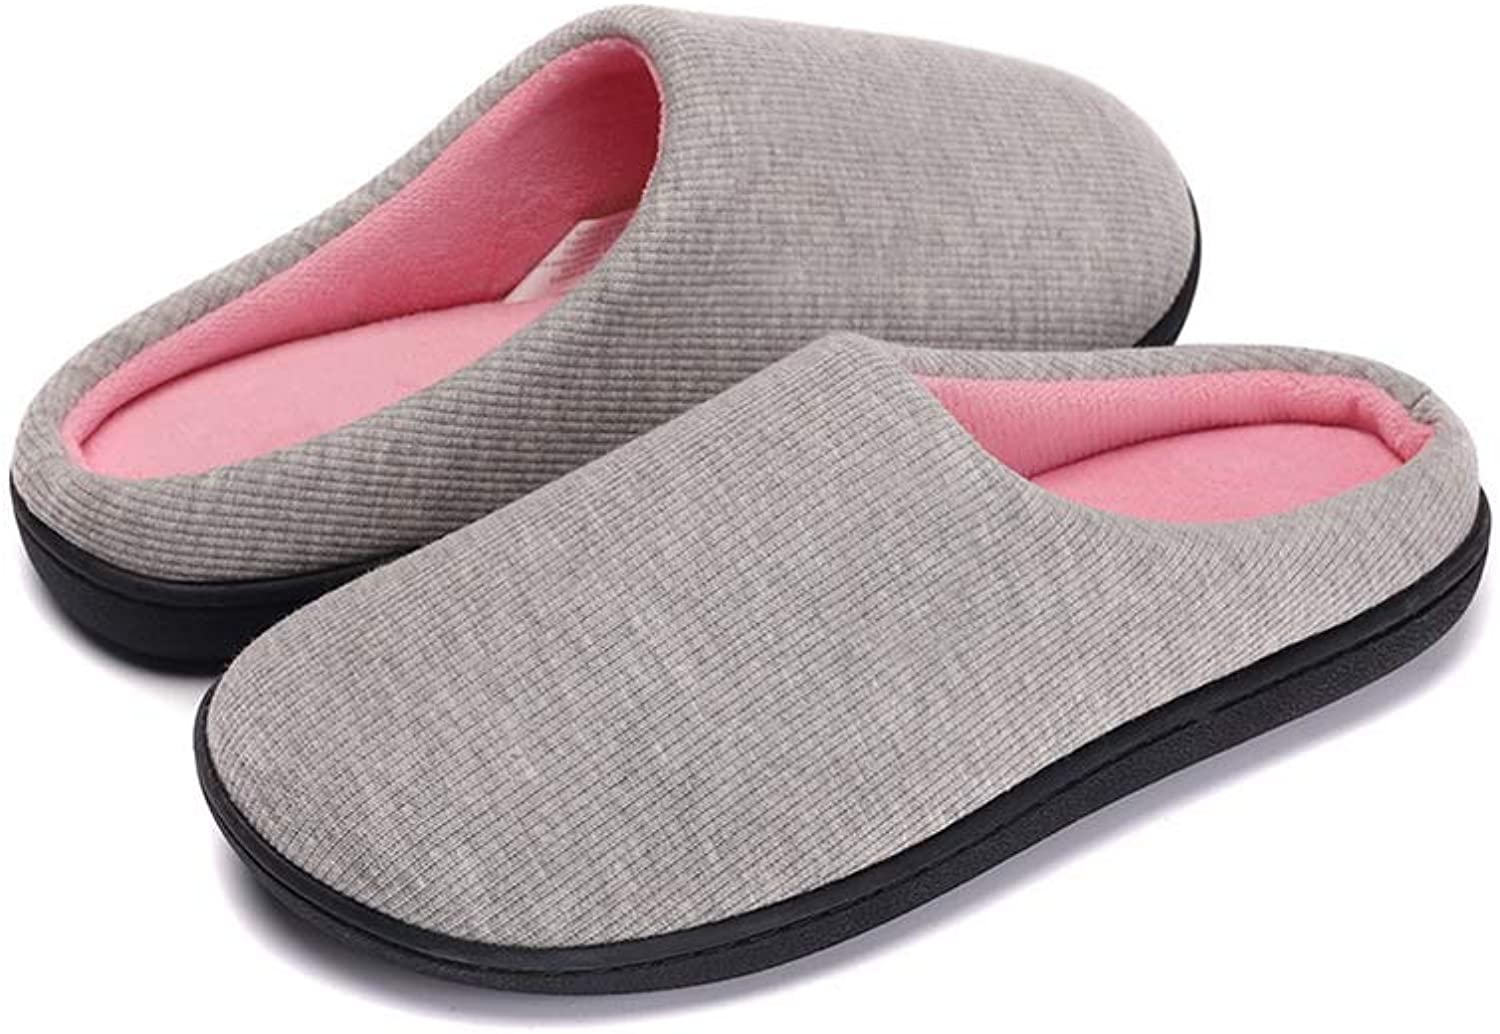 Kanarder Womens Slipper Memory Foam Fluffy Slip-on House Fleece Fur Lined Anti-Skid Sole, Indoor & Outdoor